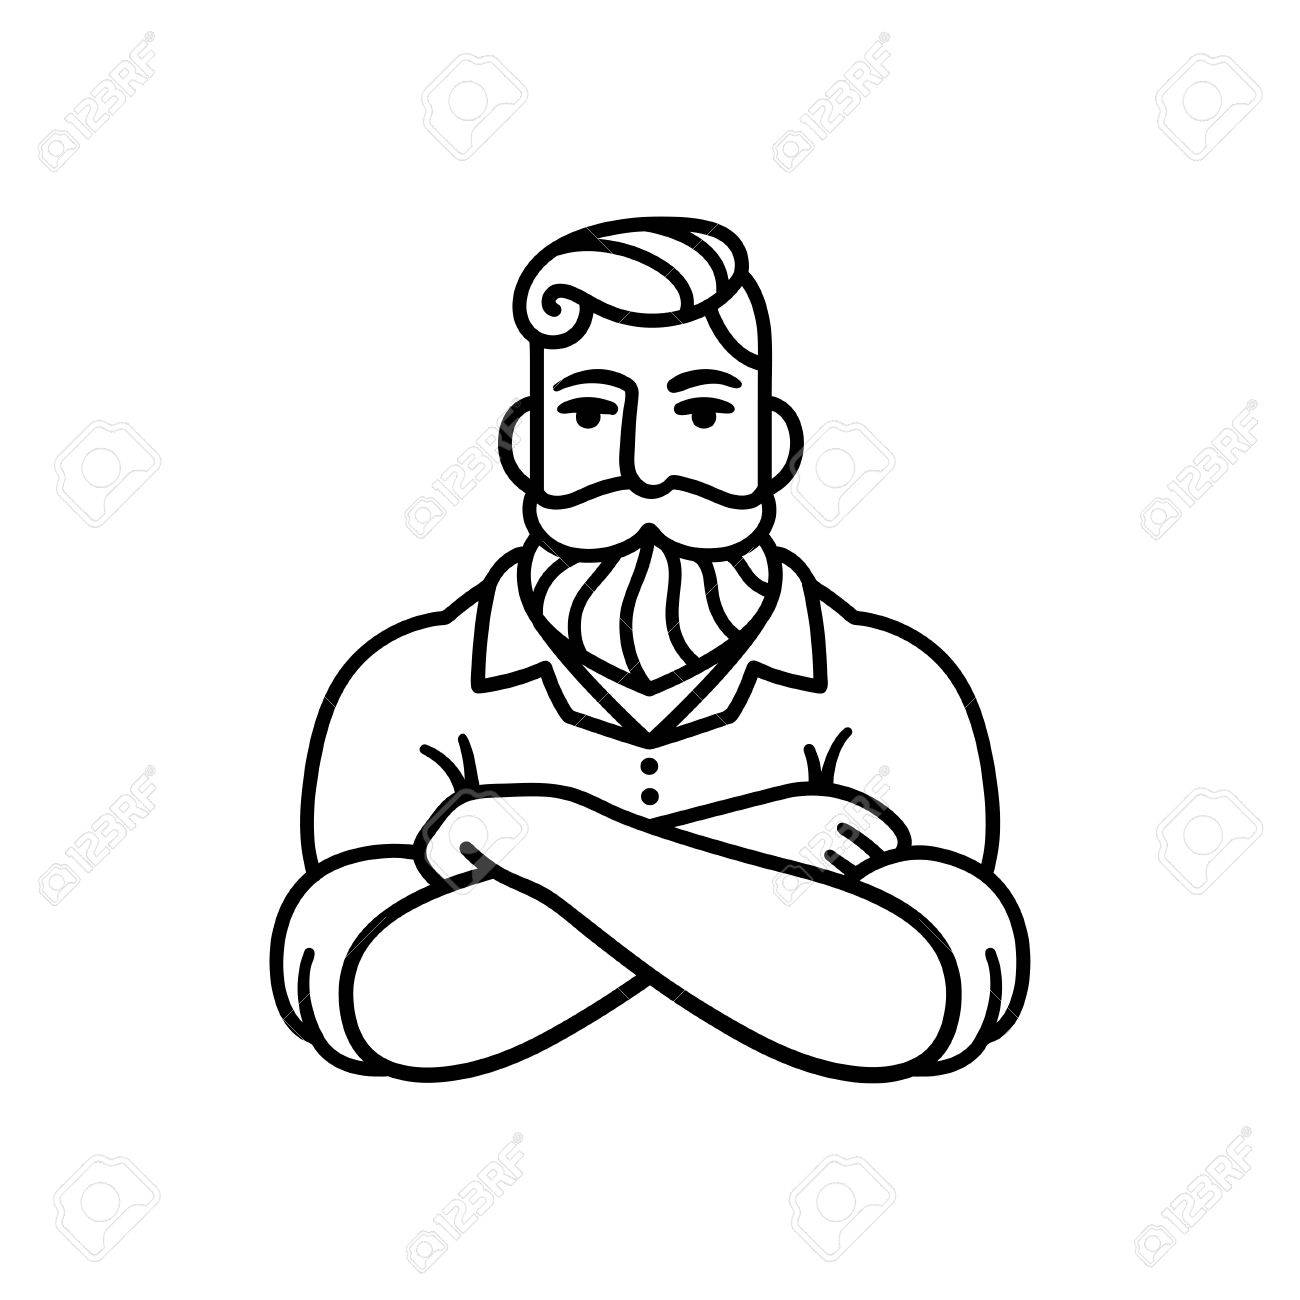 Black and white line drawing of bearded man with arms crossed stylish hipster illustration